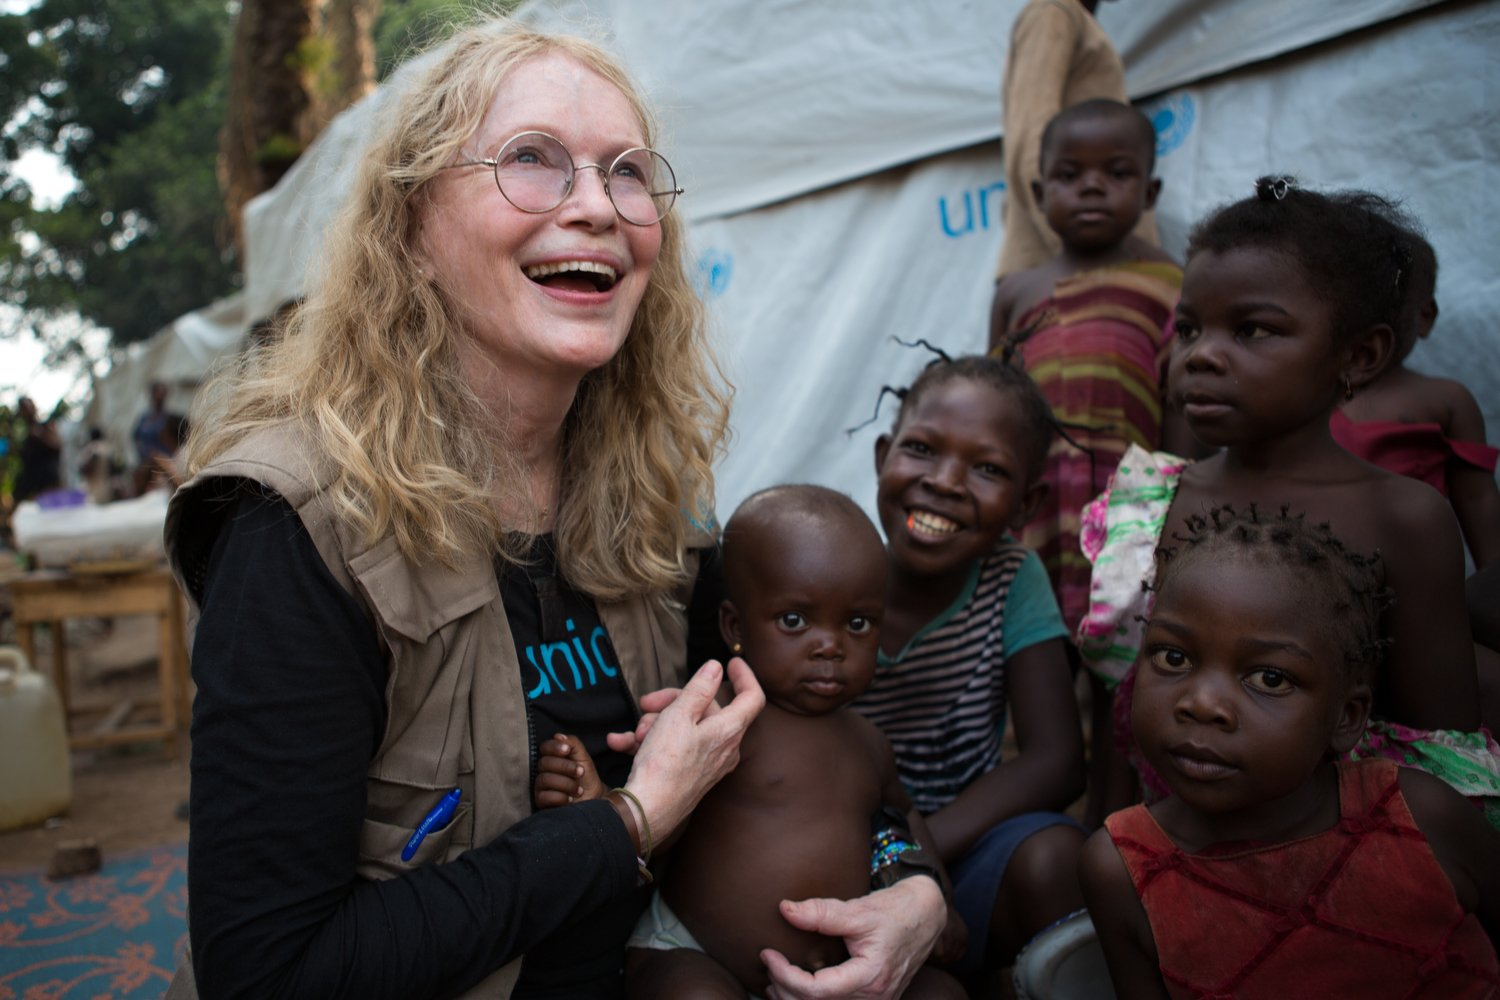 On 2 July 2015, UNICEF Goodwill Ambassador Mia Farrow greets internally displaced people (IDPs) in the Central African Republic (CAR), specifically  the St. Michel displacement site near the southern town of Boda in Lobaye Prefecture.